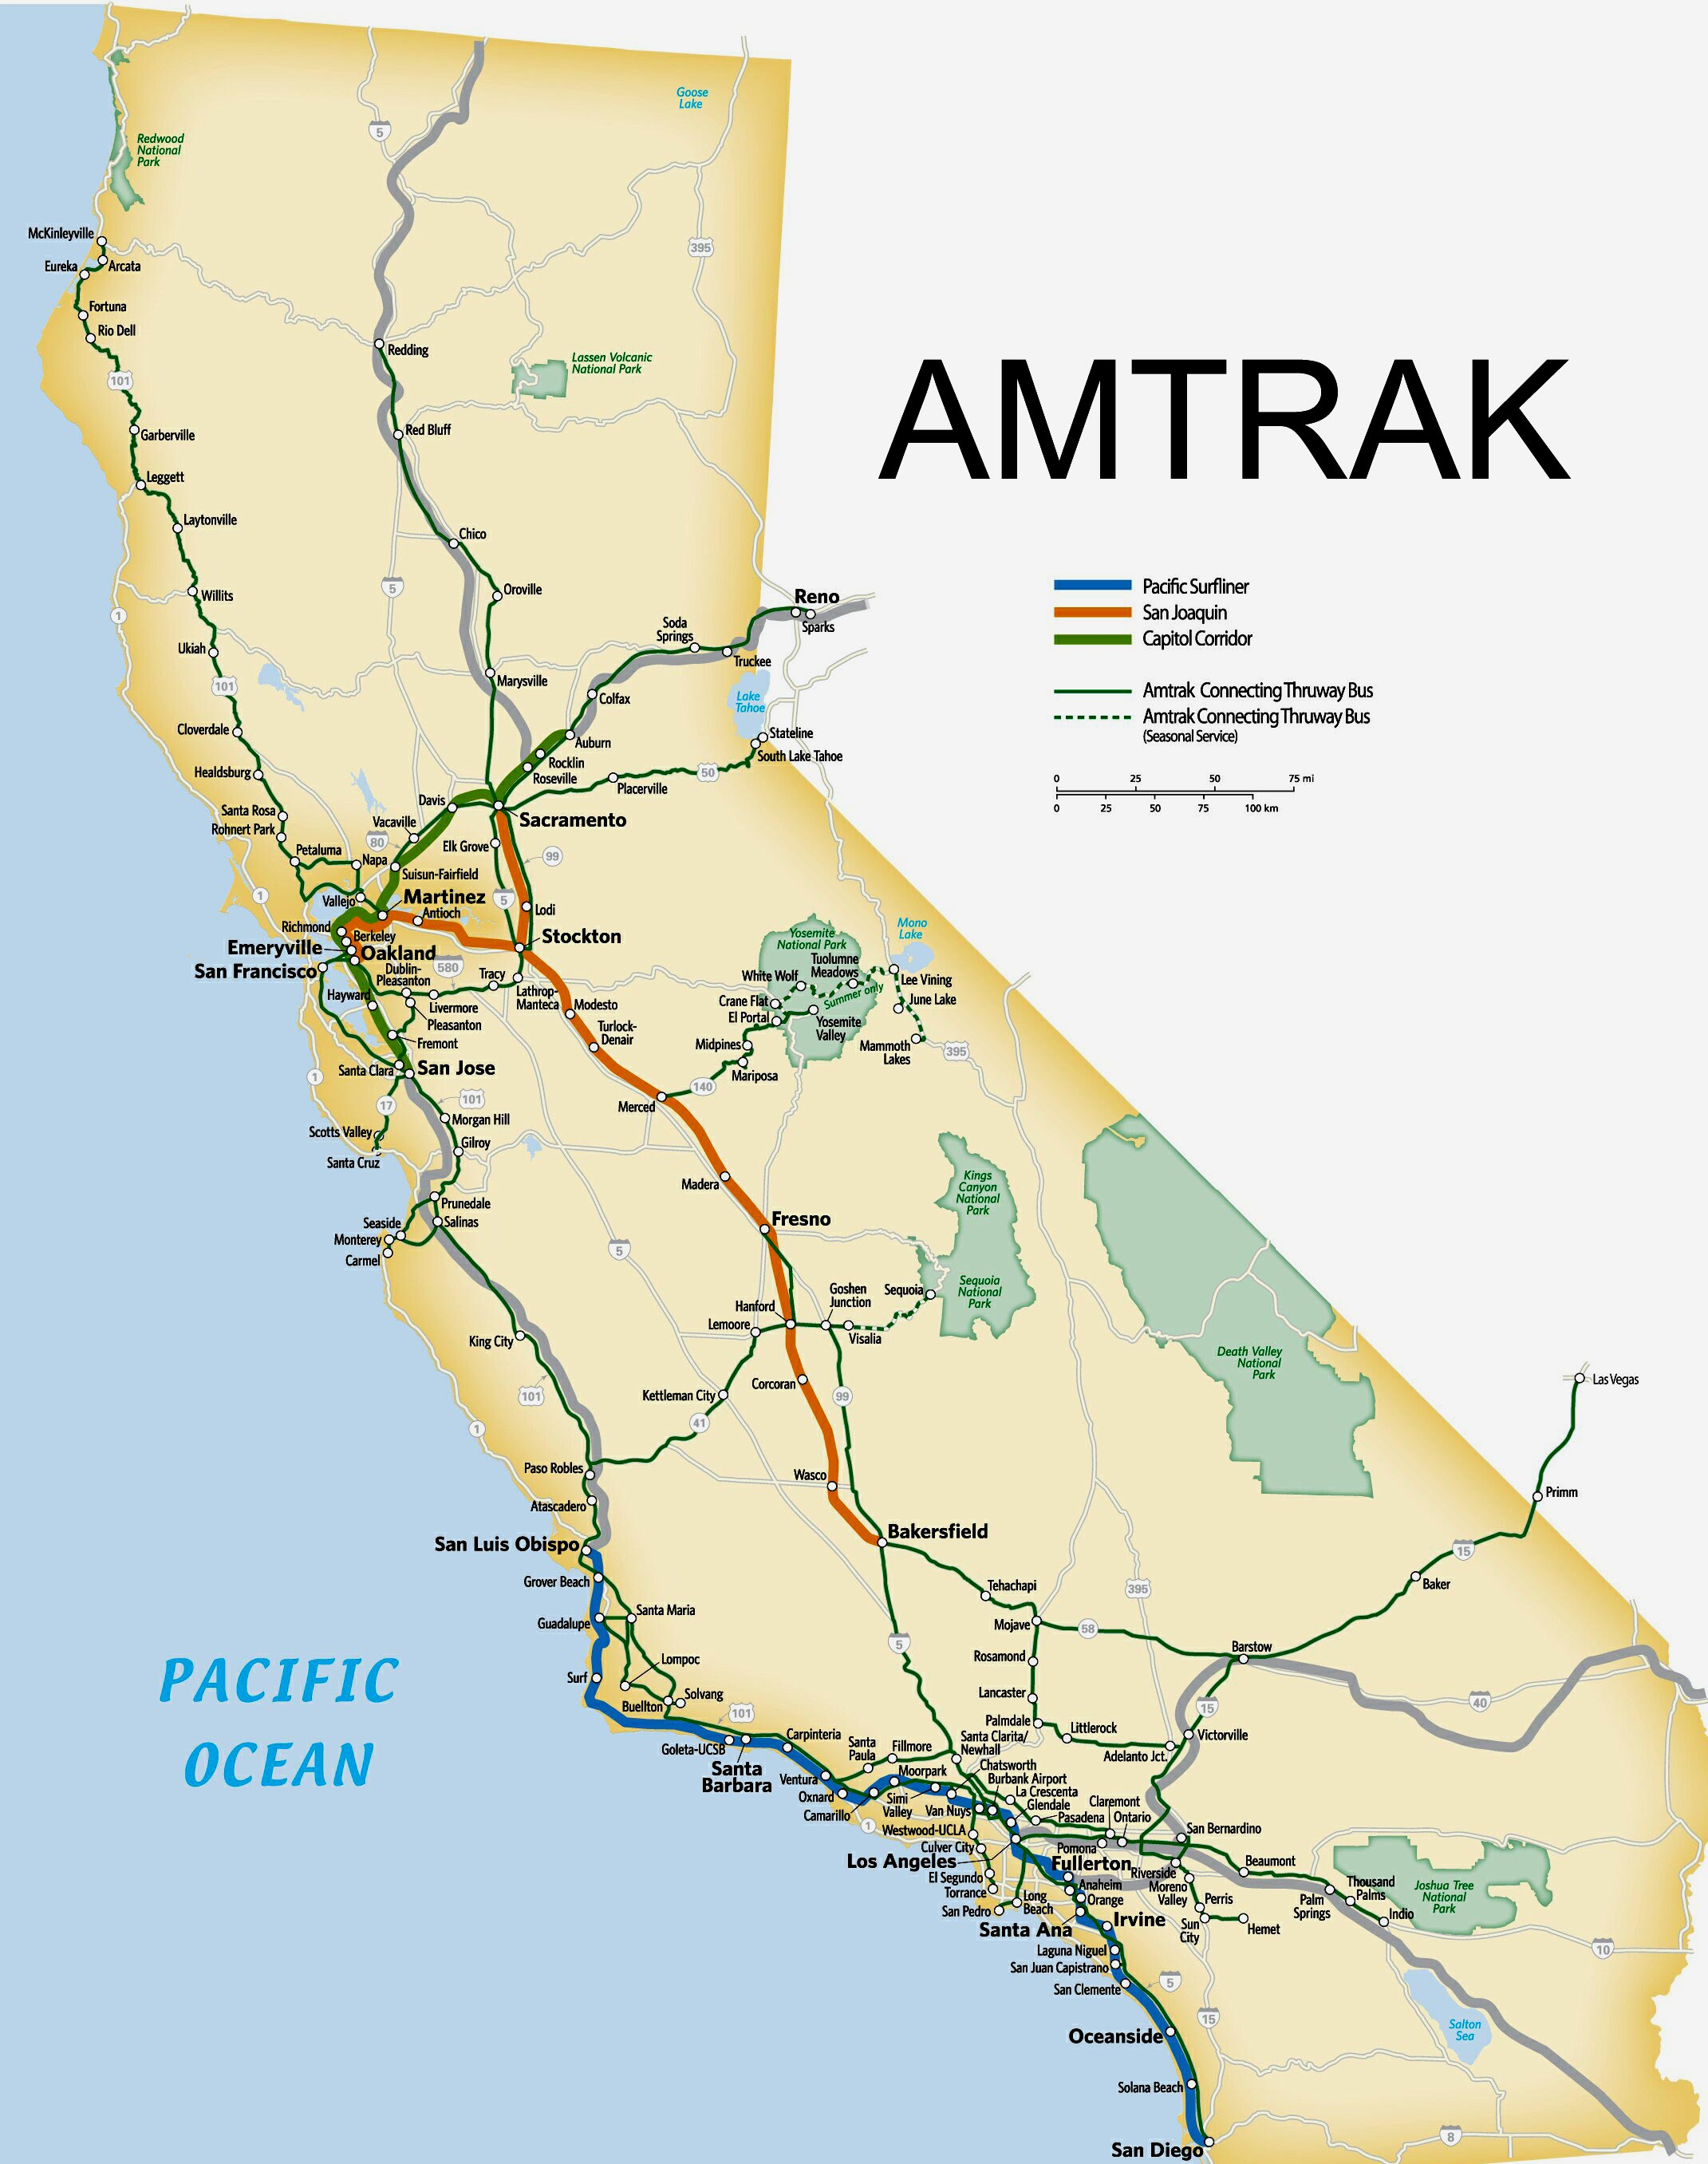 Amtrak Route Map Southern Map Of California Springs Amtrak Map - Amtrak Map California